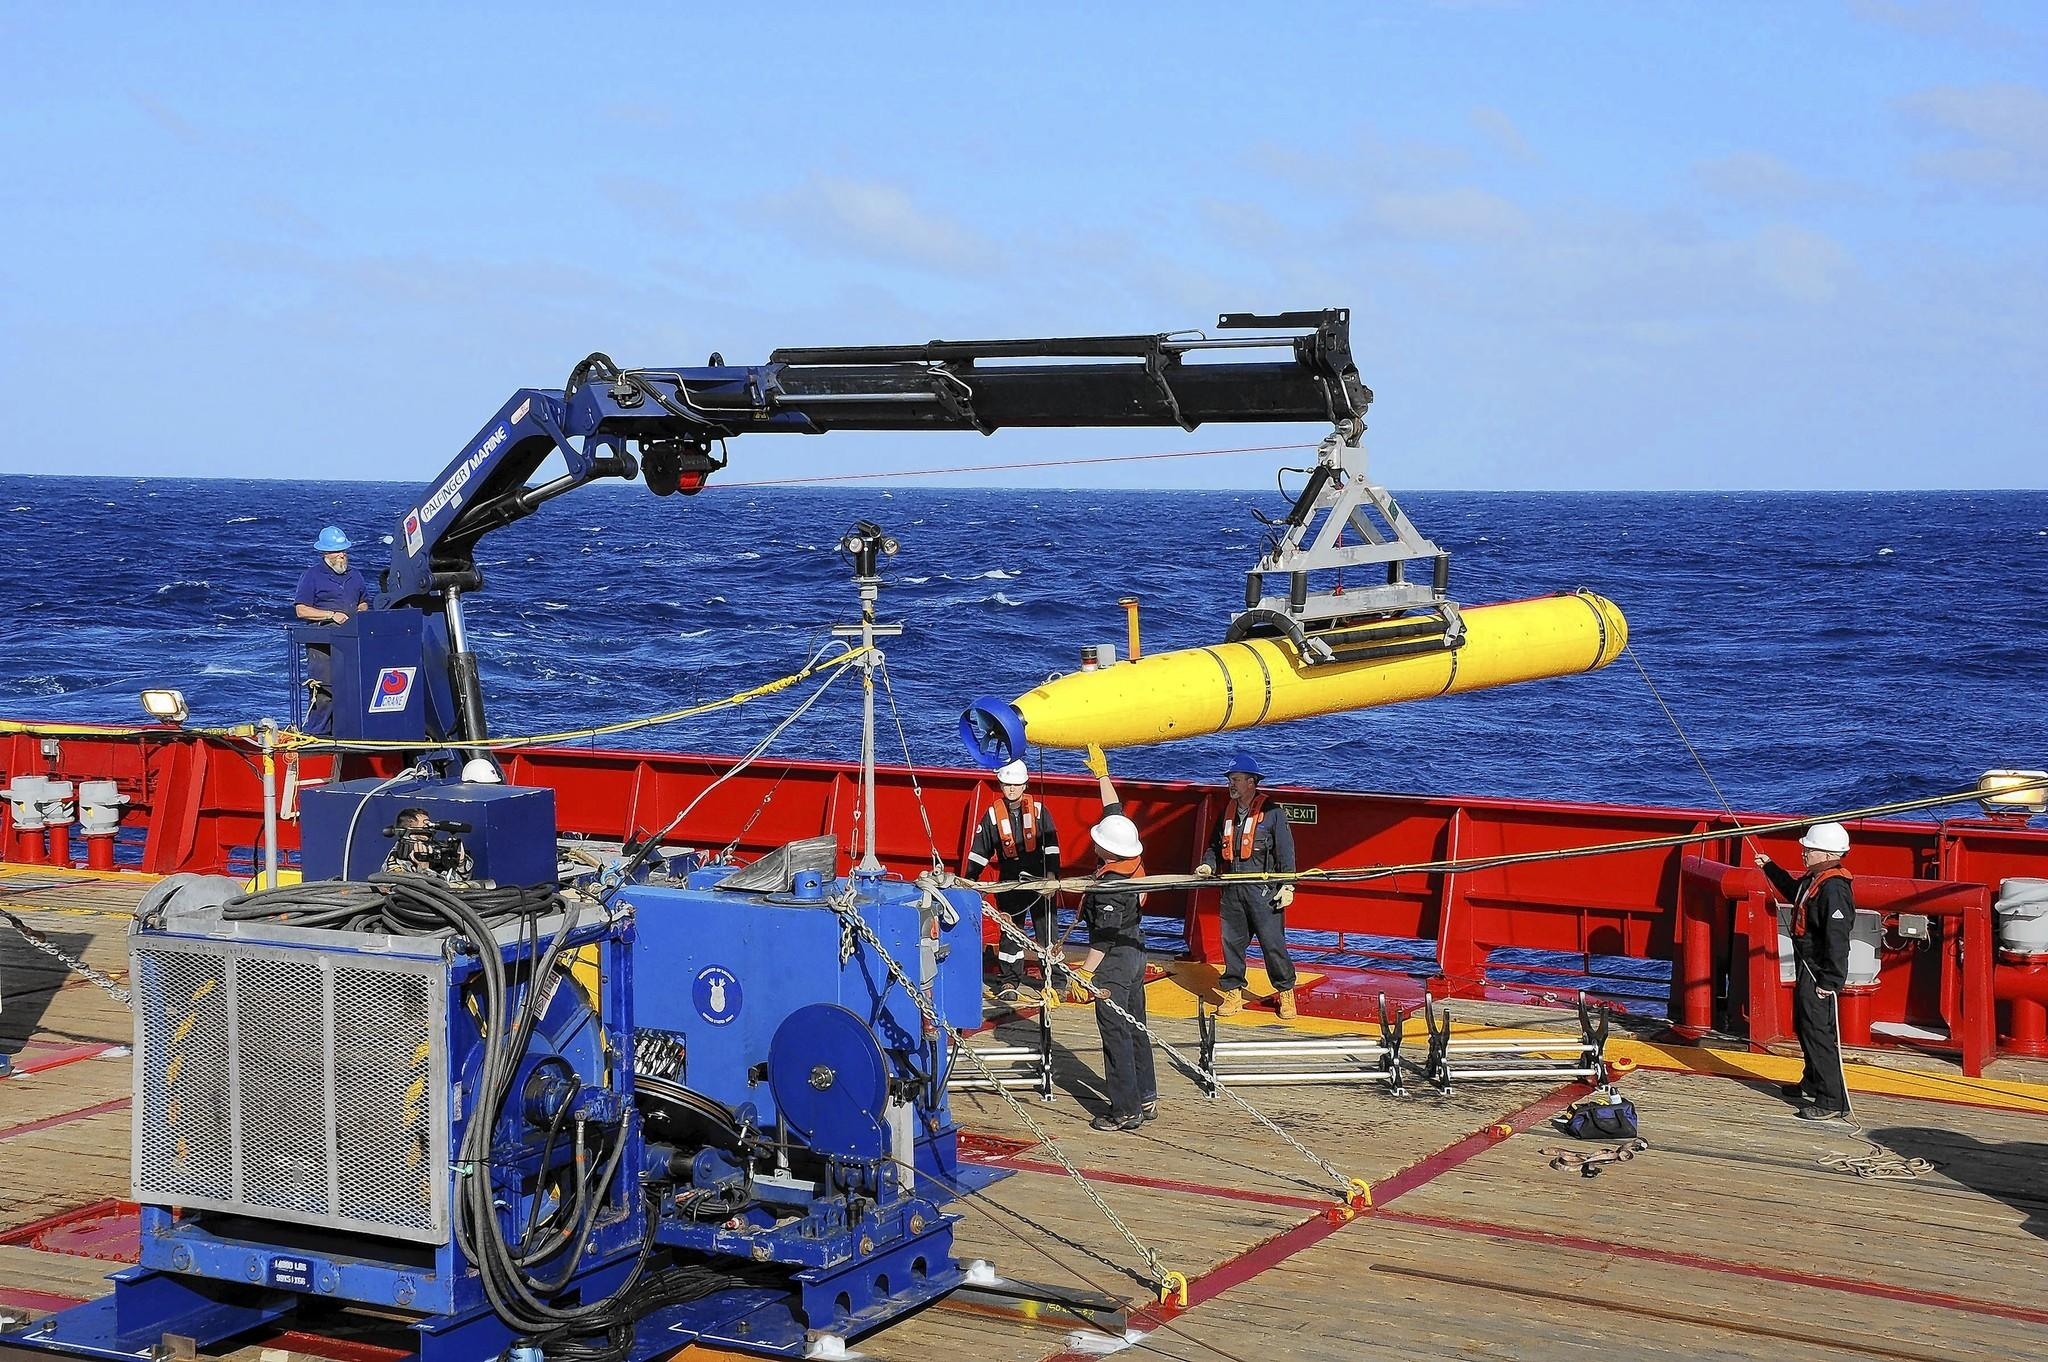 The Bluefin-21 autonomous underwater vehicle is hoisted back onto the Australian ship Ocean Shield after buoyancy testing in the Indian Ocean. The robotic submarine with side-scanning radar will soon search the seabed for wreckage from the missing Malaysia Airlines Flight 370.